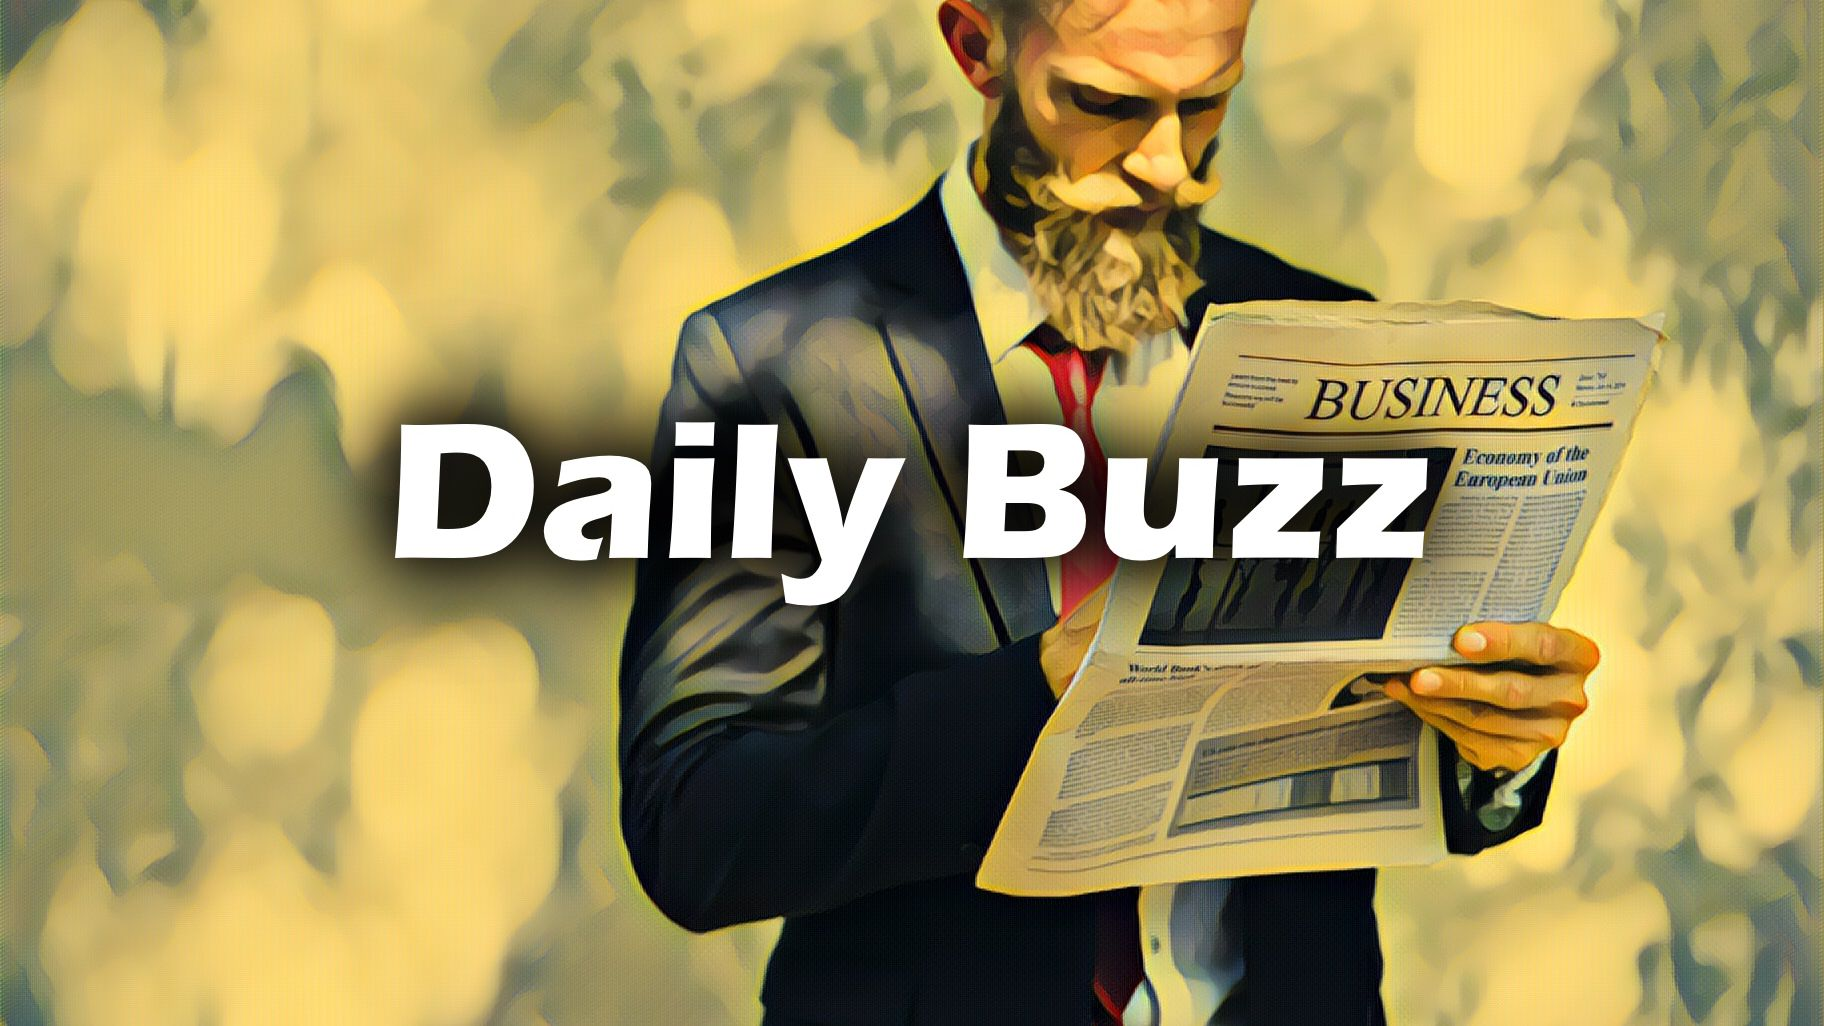 DailyBuzz Wednesday 19 December 2018